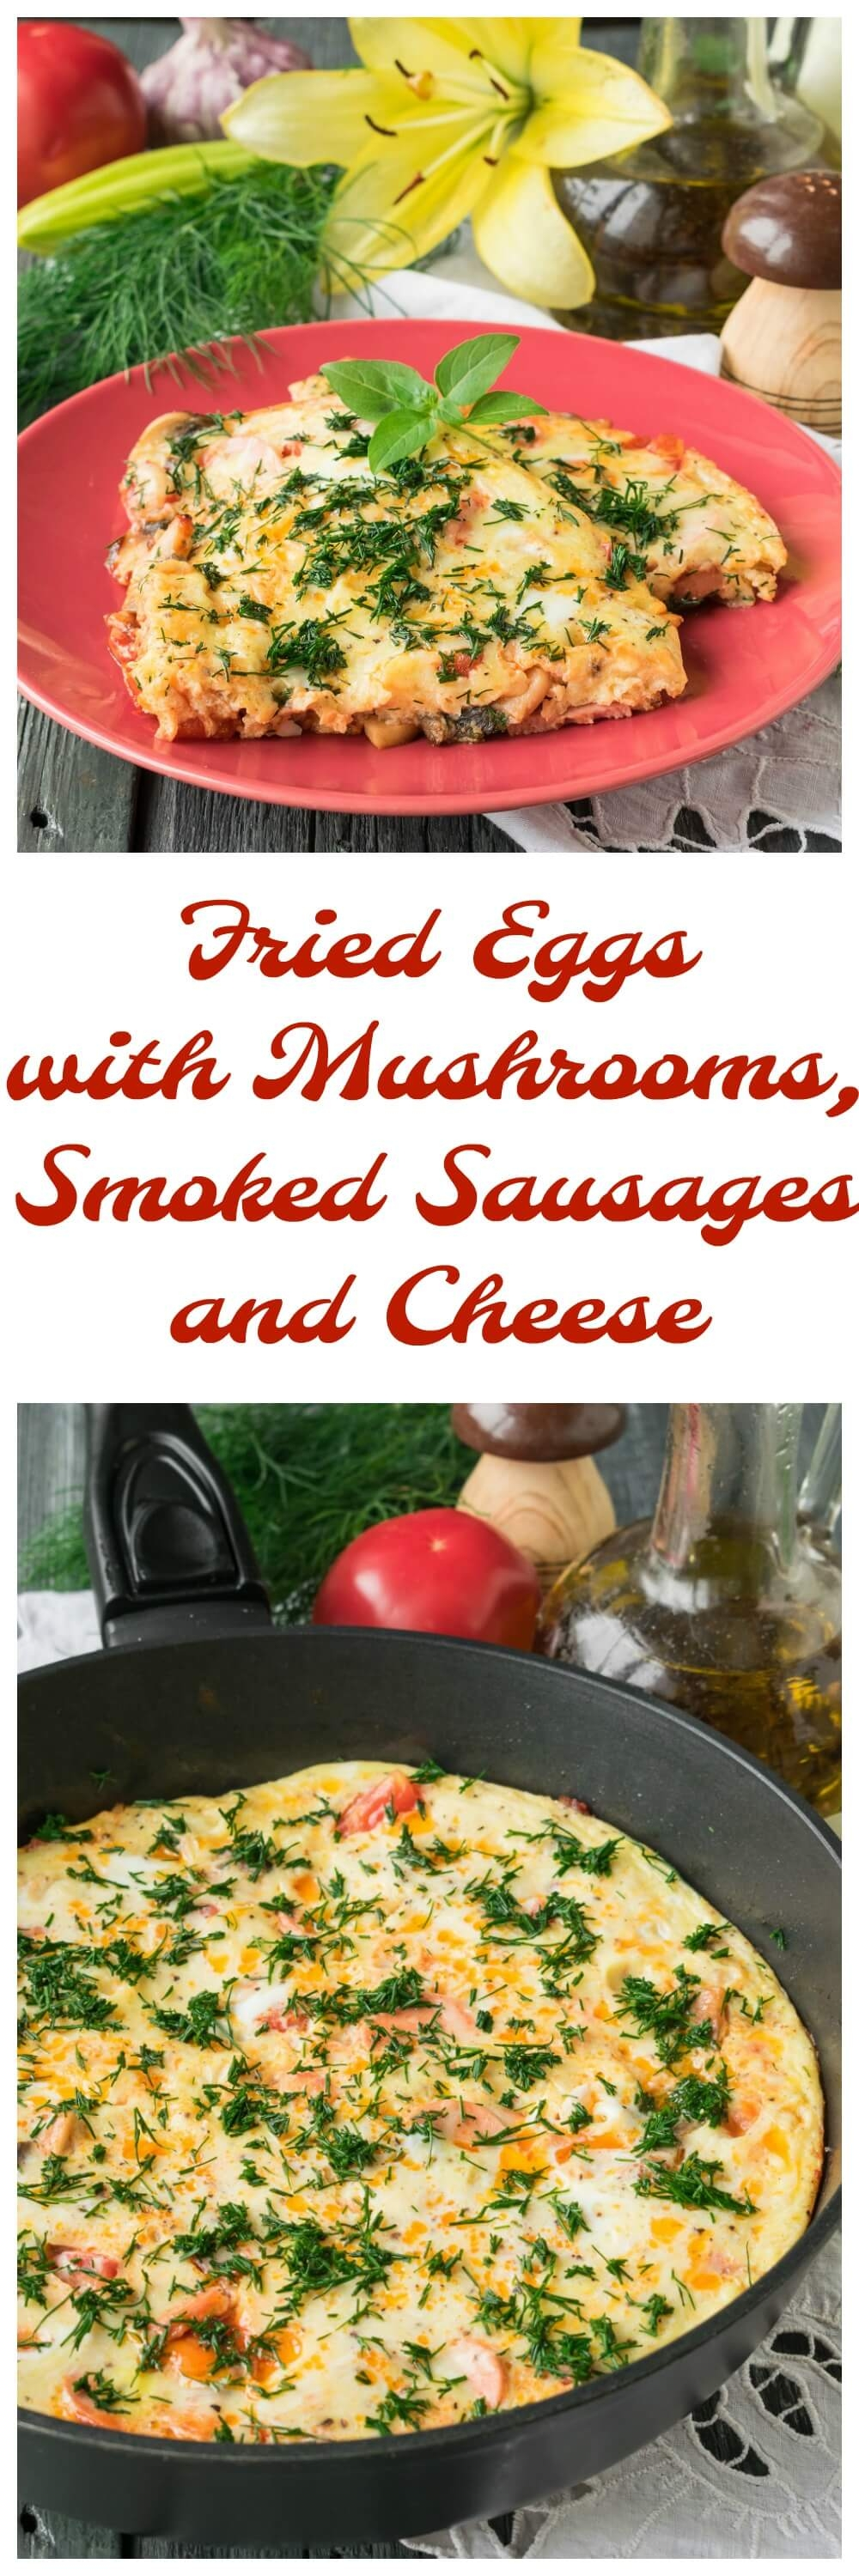 Fried Eggs with Mushrooms, Smoked Sausages and Cheese